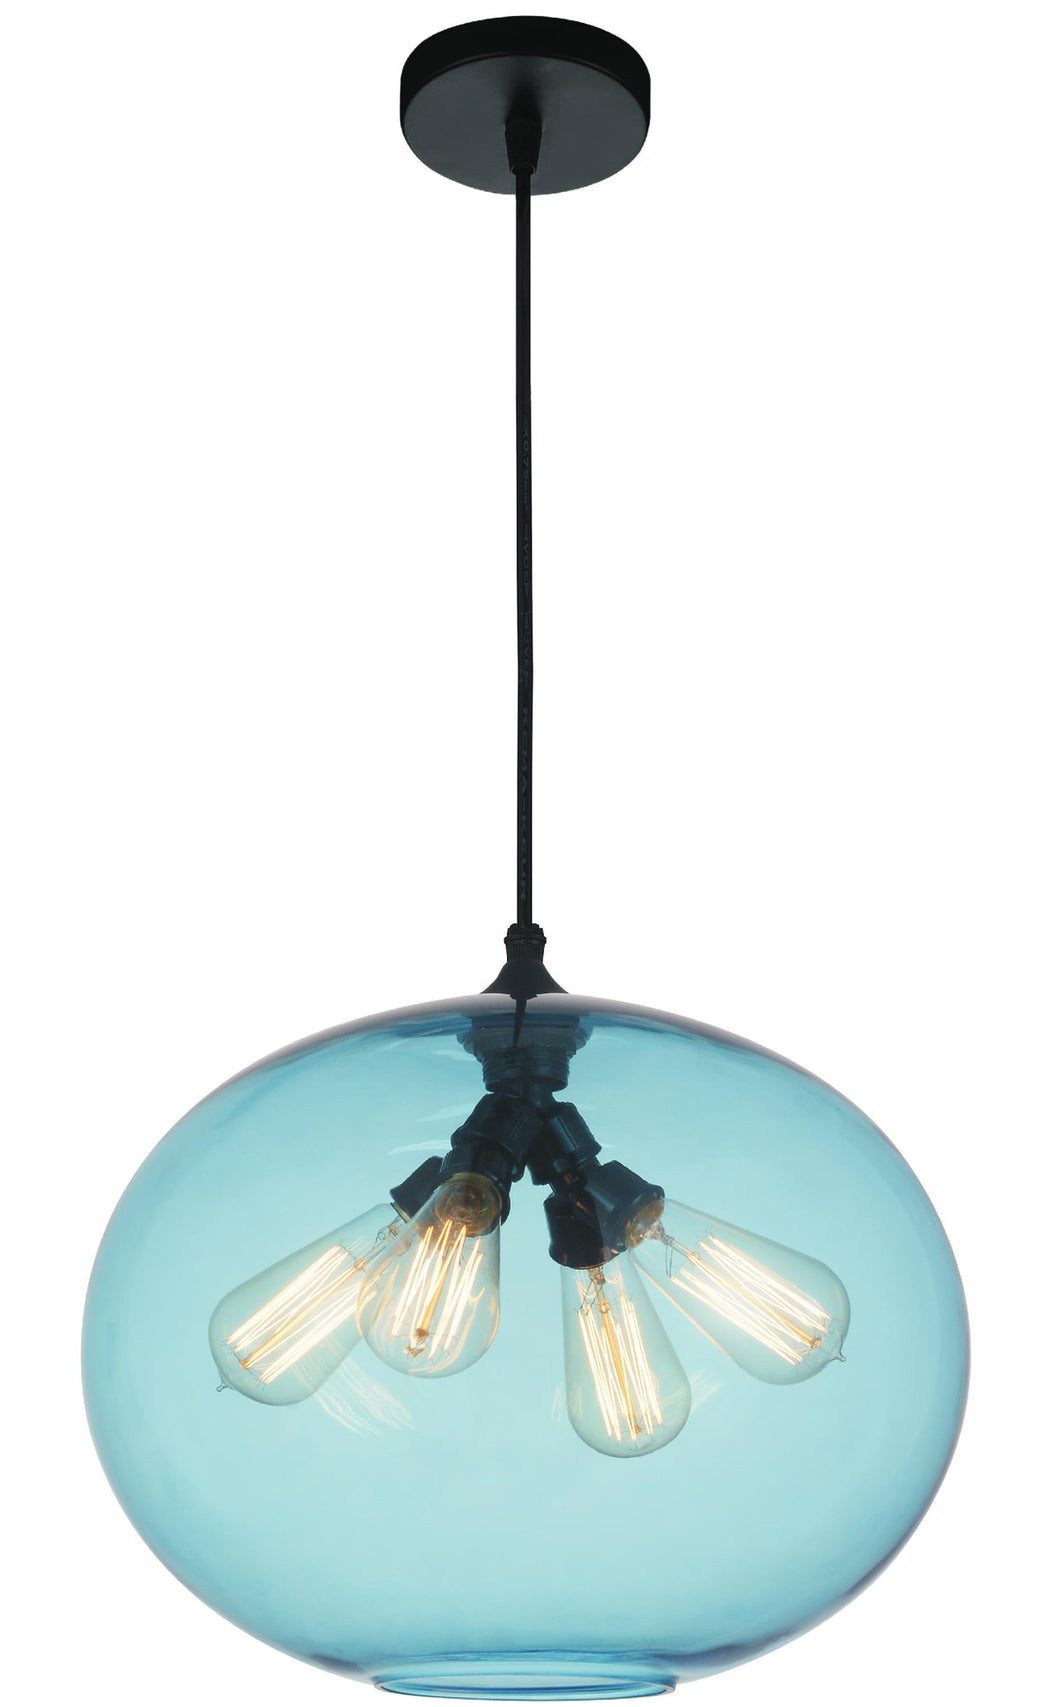 4 Light Down Pendant with Transparent Blue finish